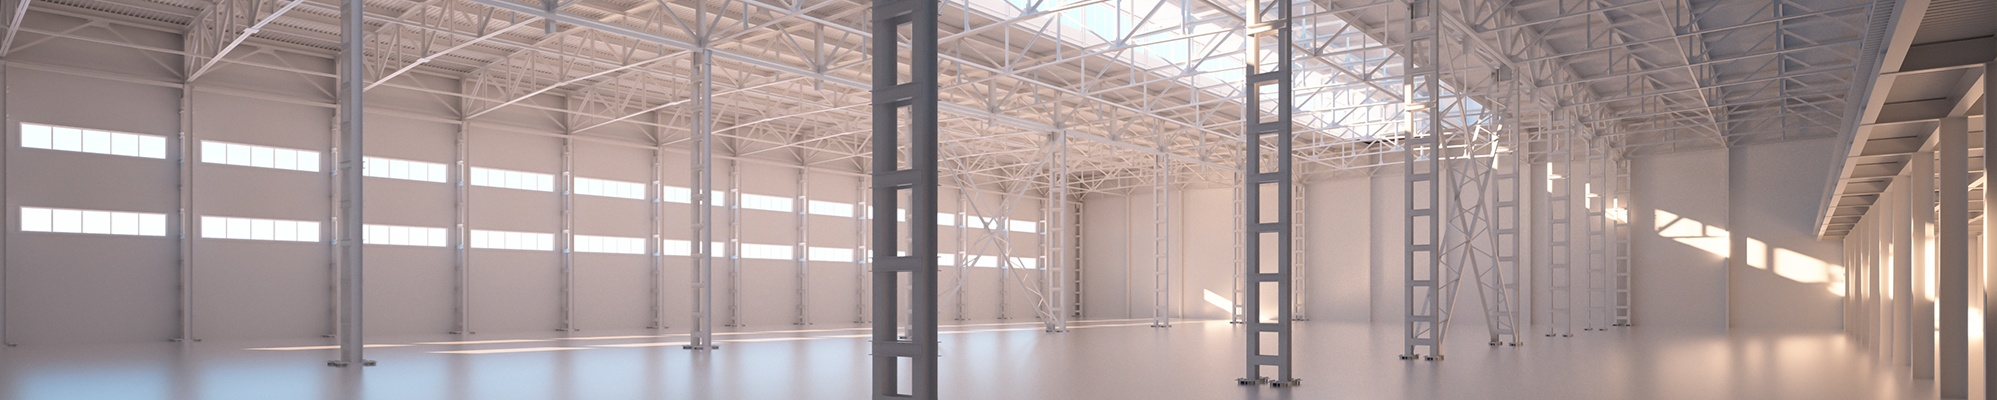 commercial-dust-collection-systems